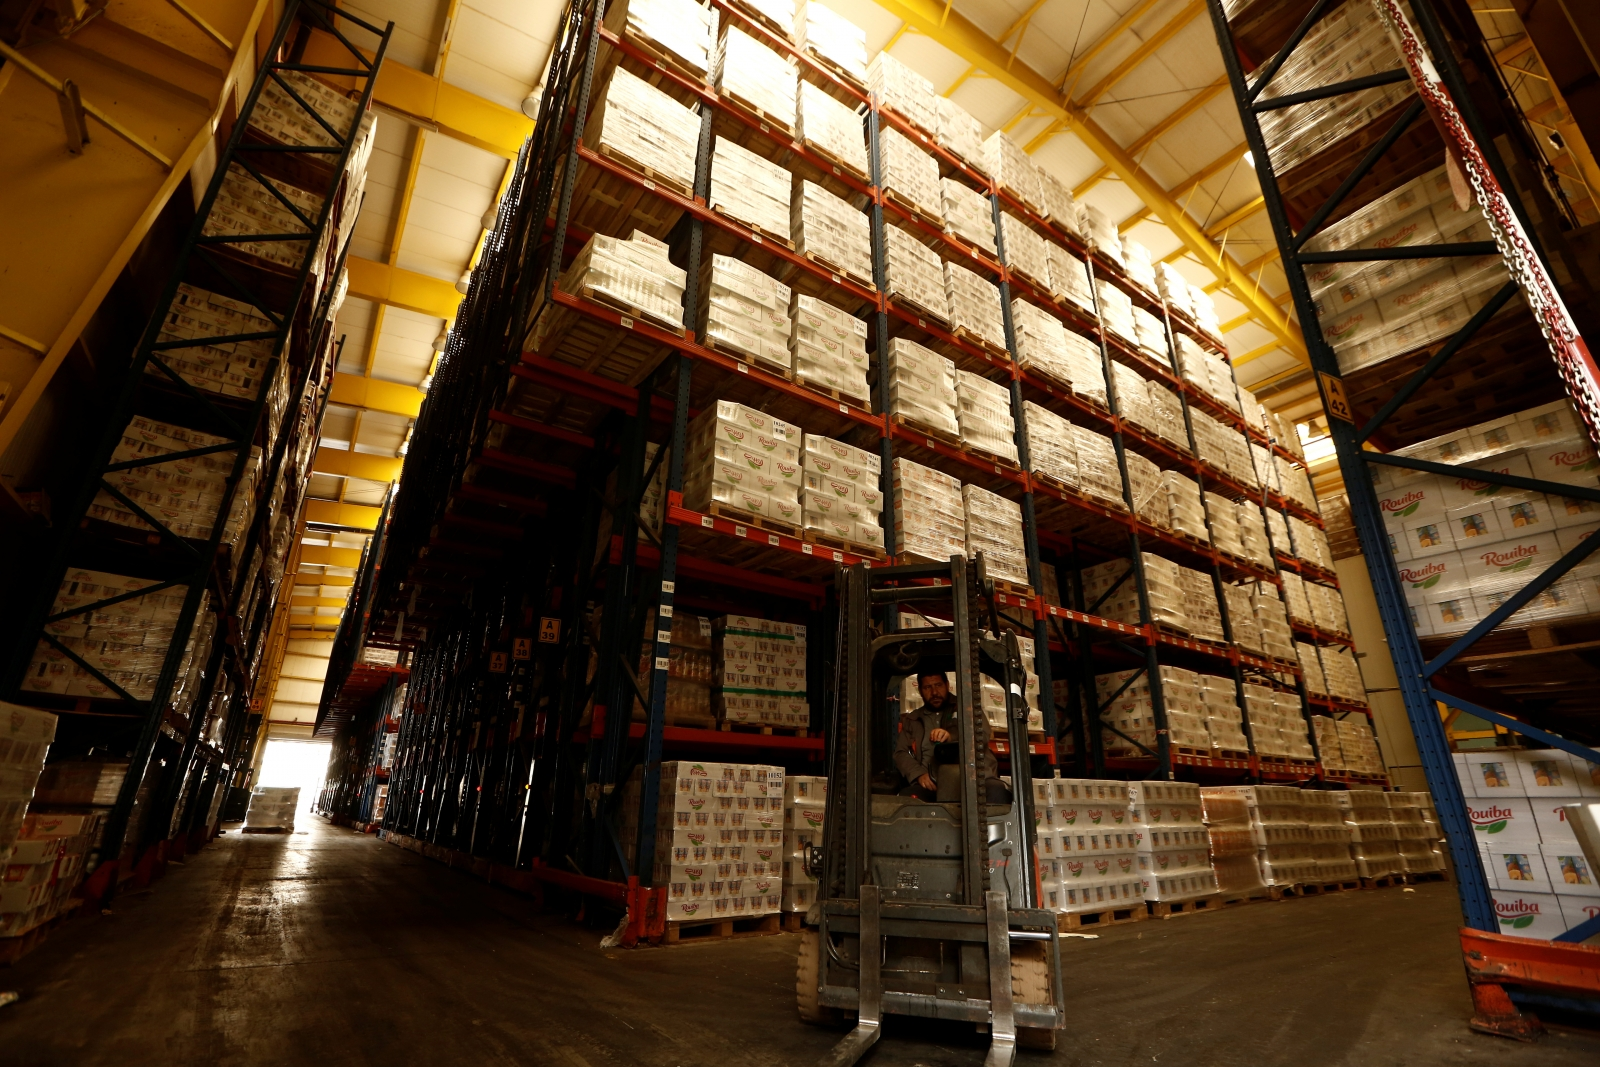 SEGRO says there is a strong demand for high quality warehouse assets despite the Brexit vote